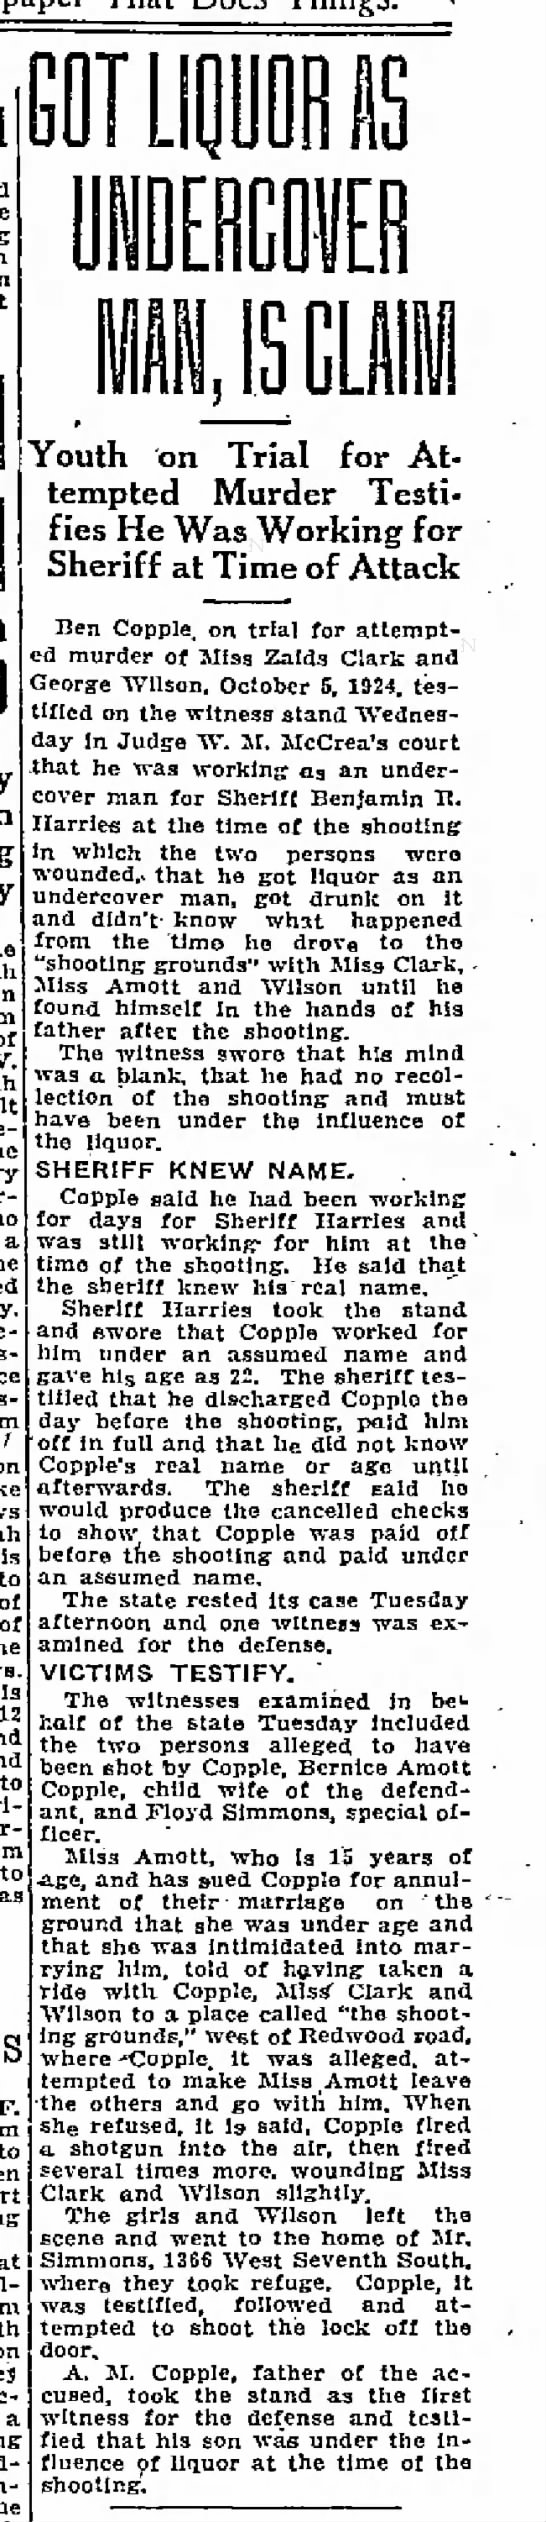 Benjamin Garl Copple attempted murder